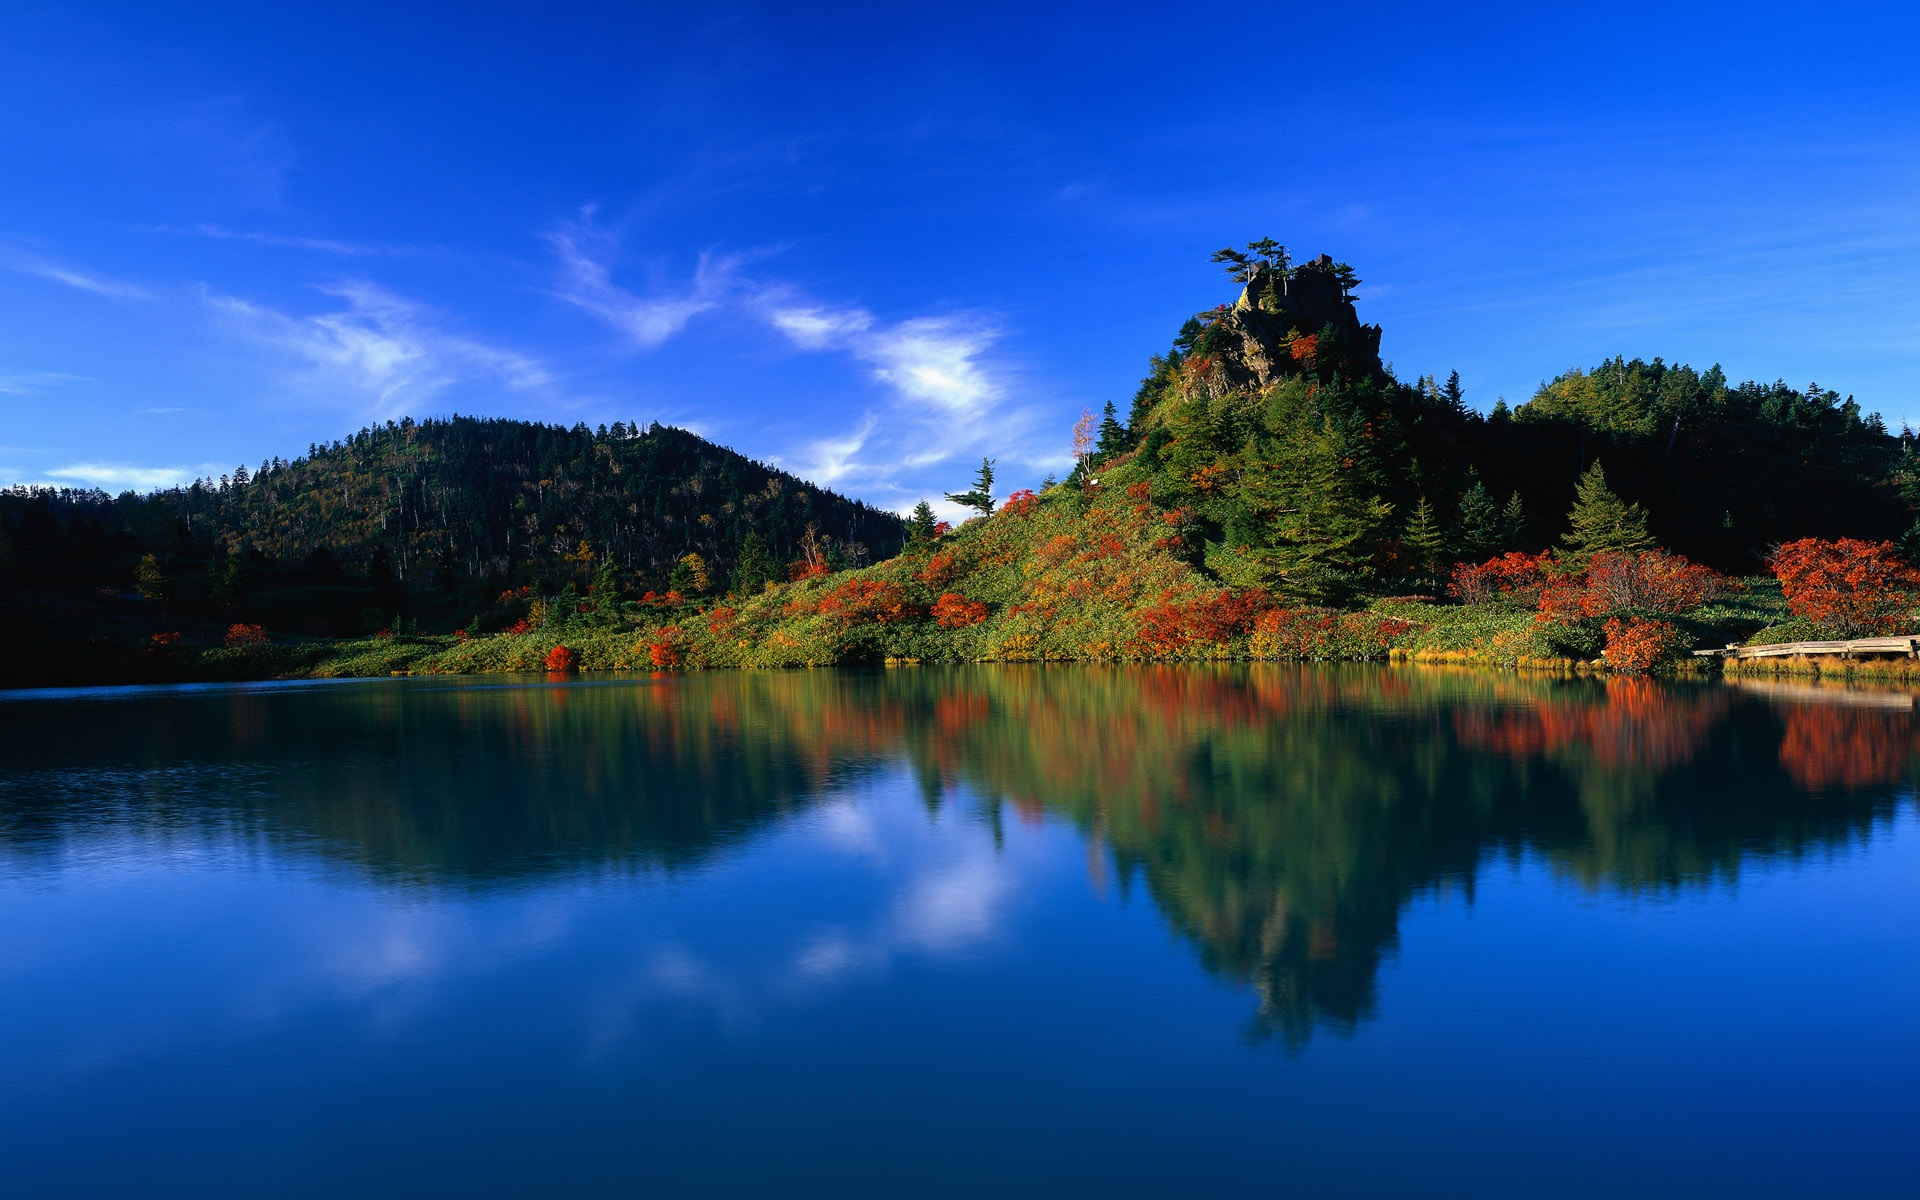 blue sky blue water green hill wallpaper: desktop hd wallpaper